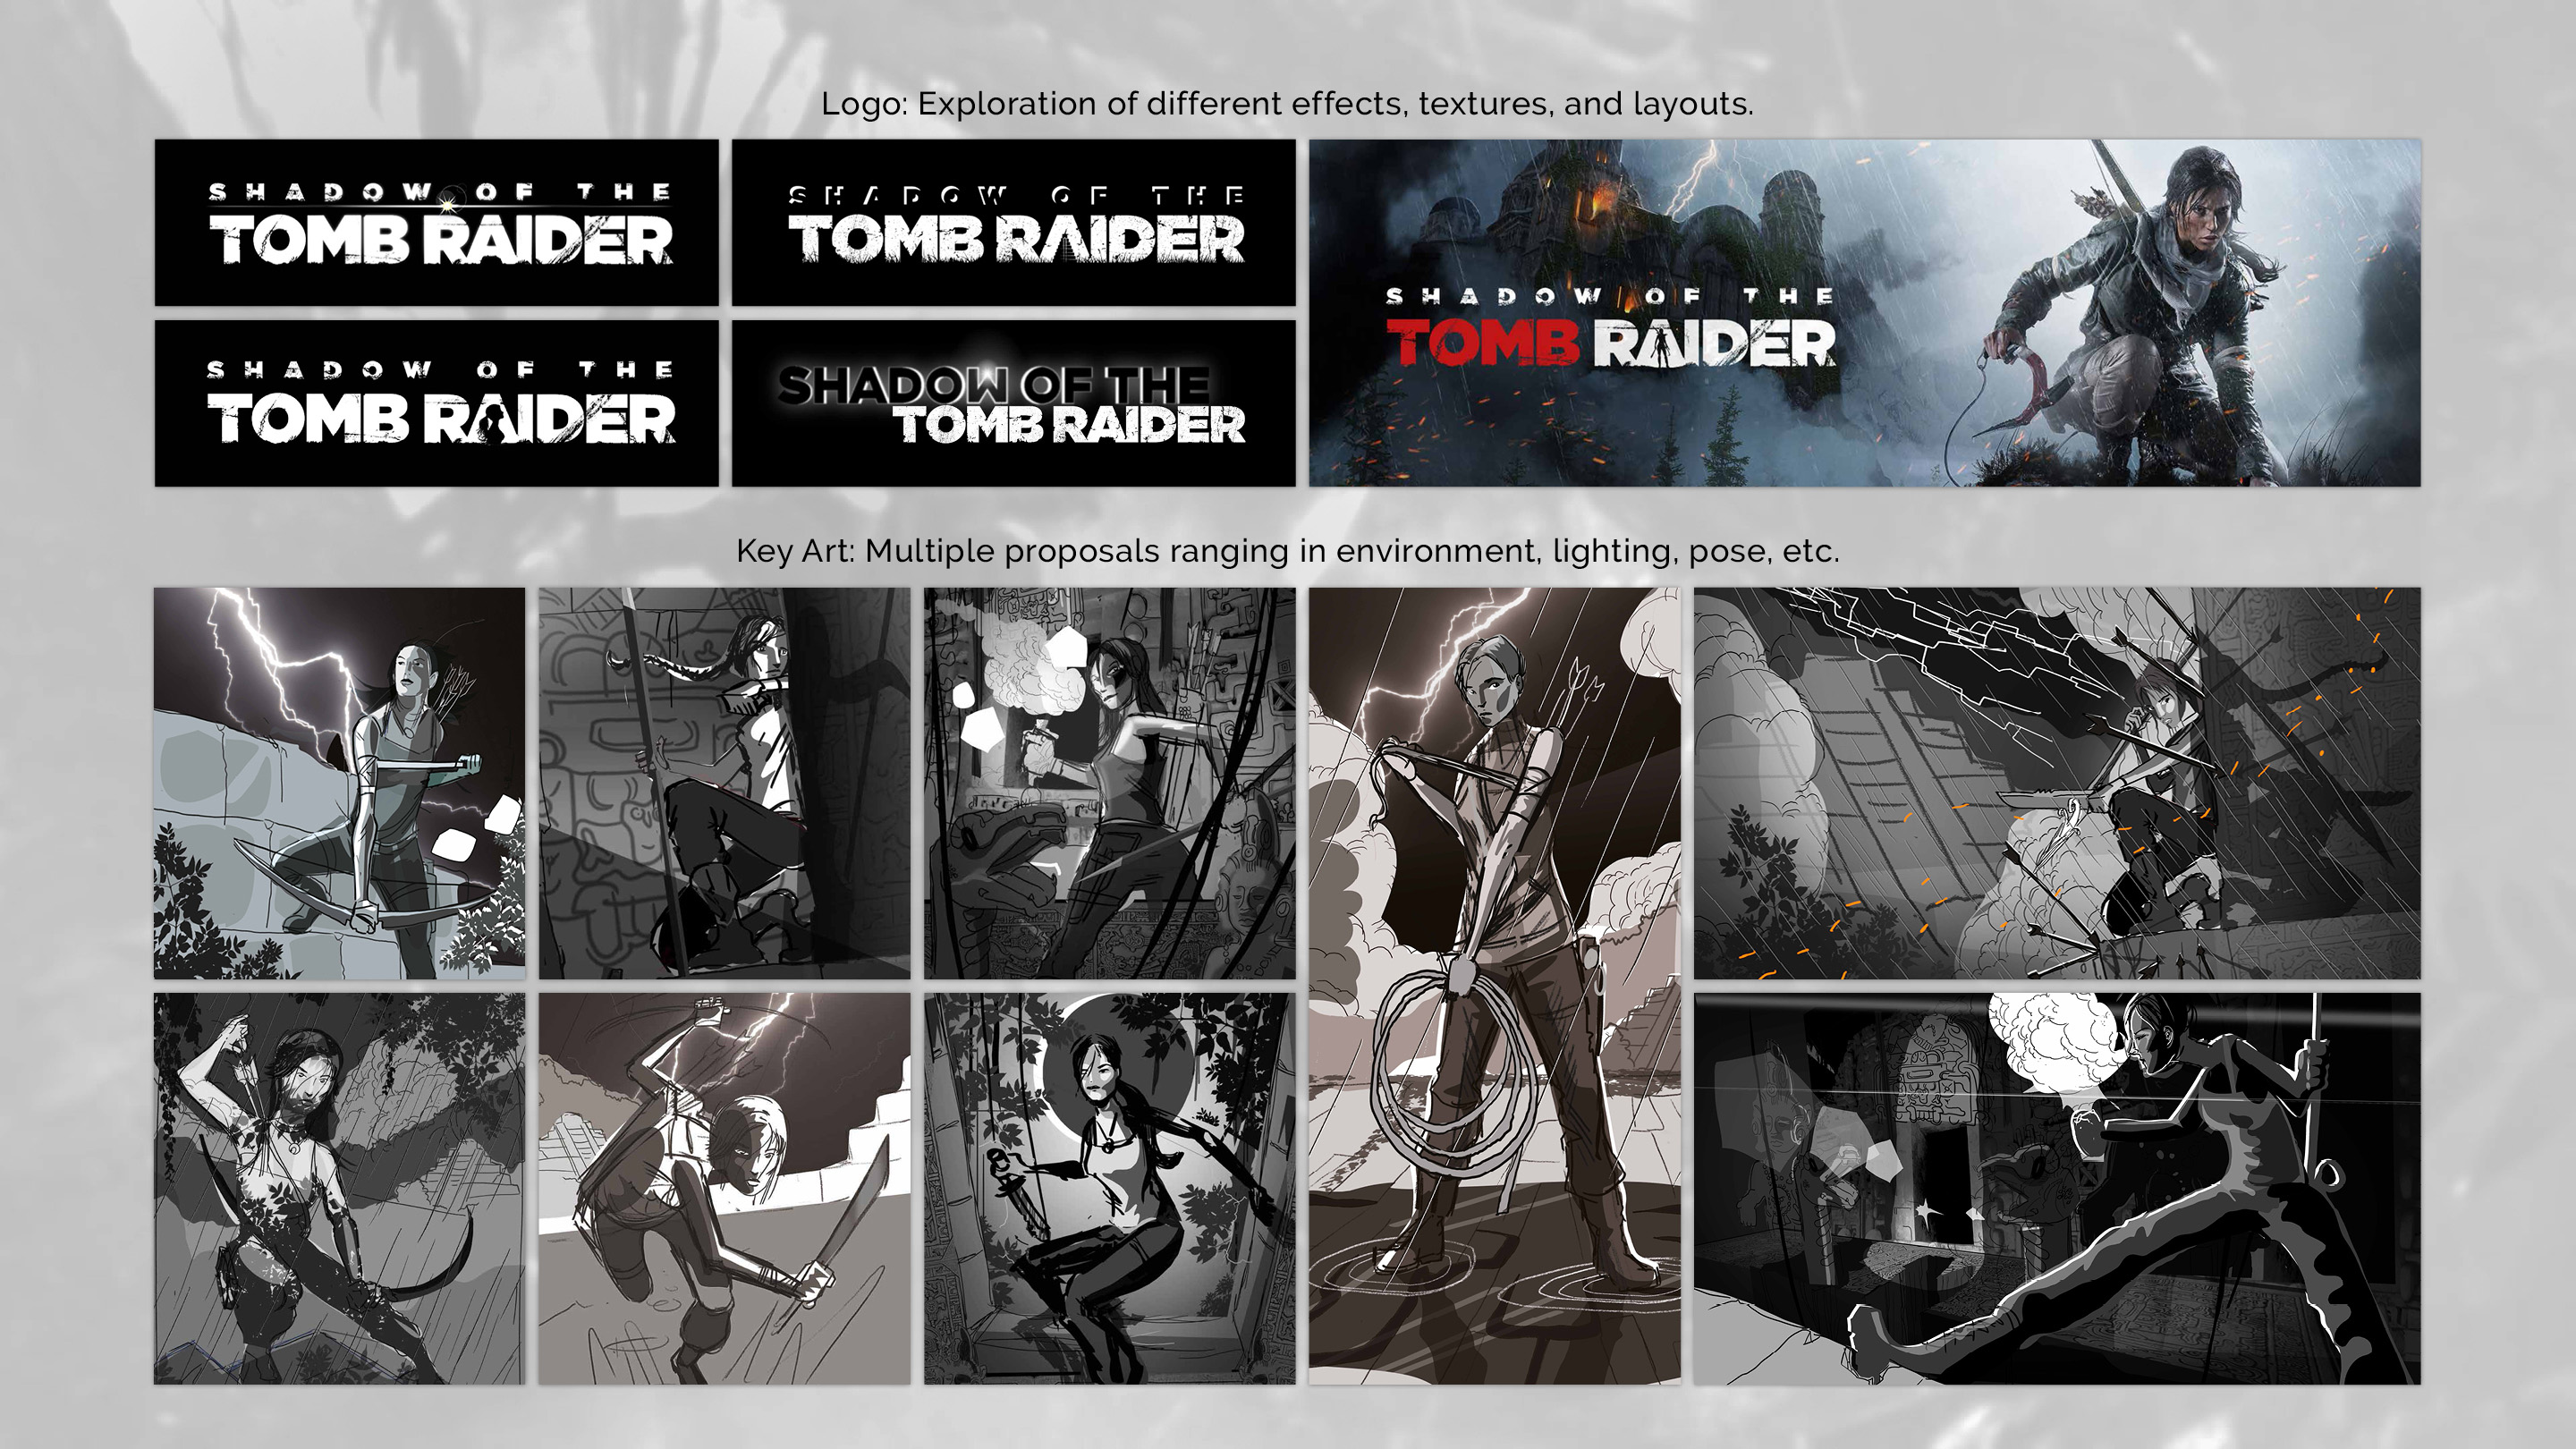 Shadow of the Tomb Raider artwork leaks